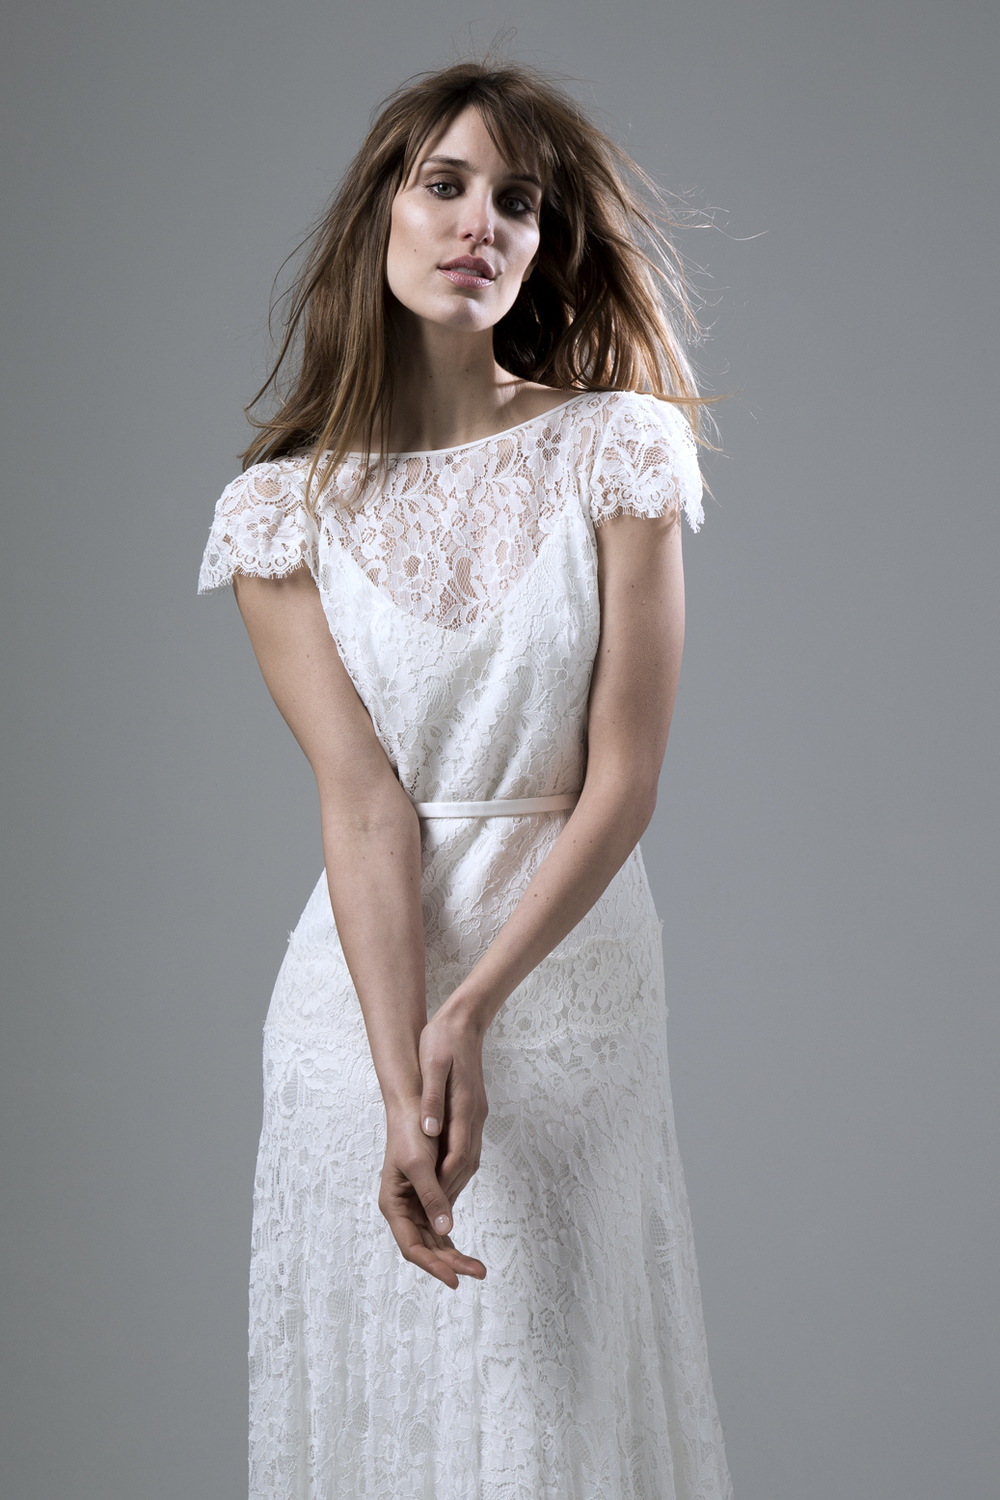 Violet soft fine corded lace backless dress with a dropped waist wedding dress by Halfpenny London